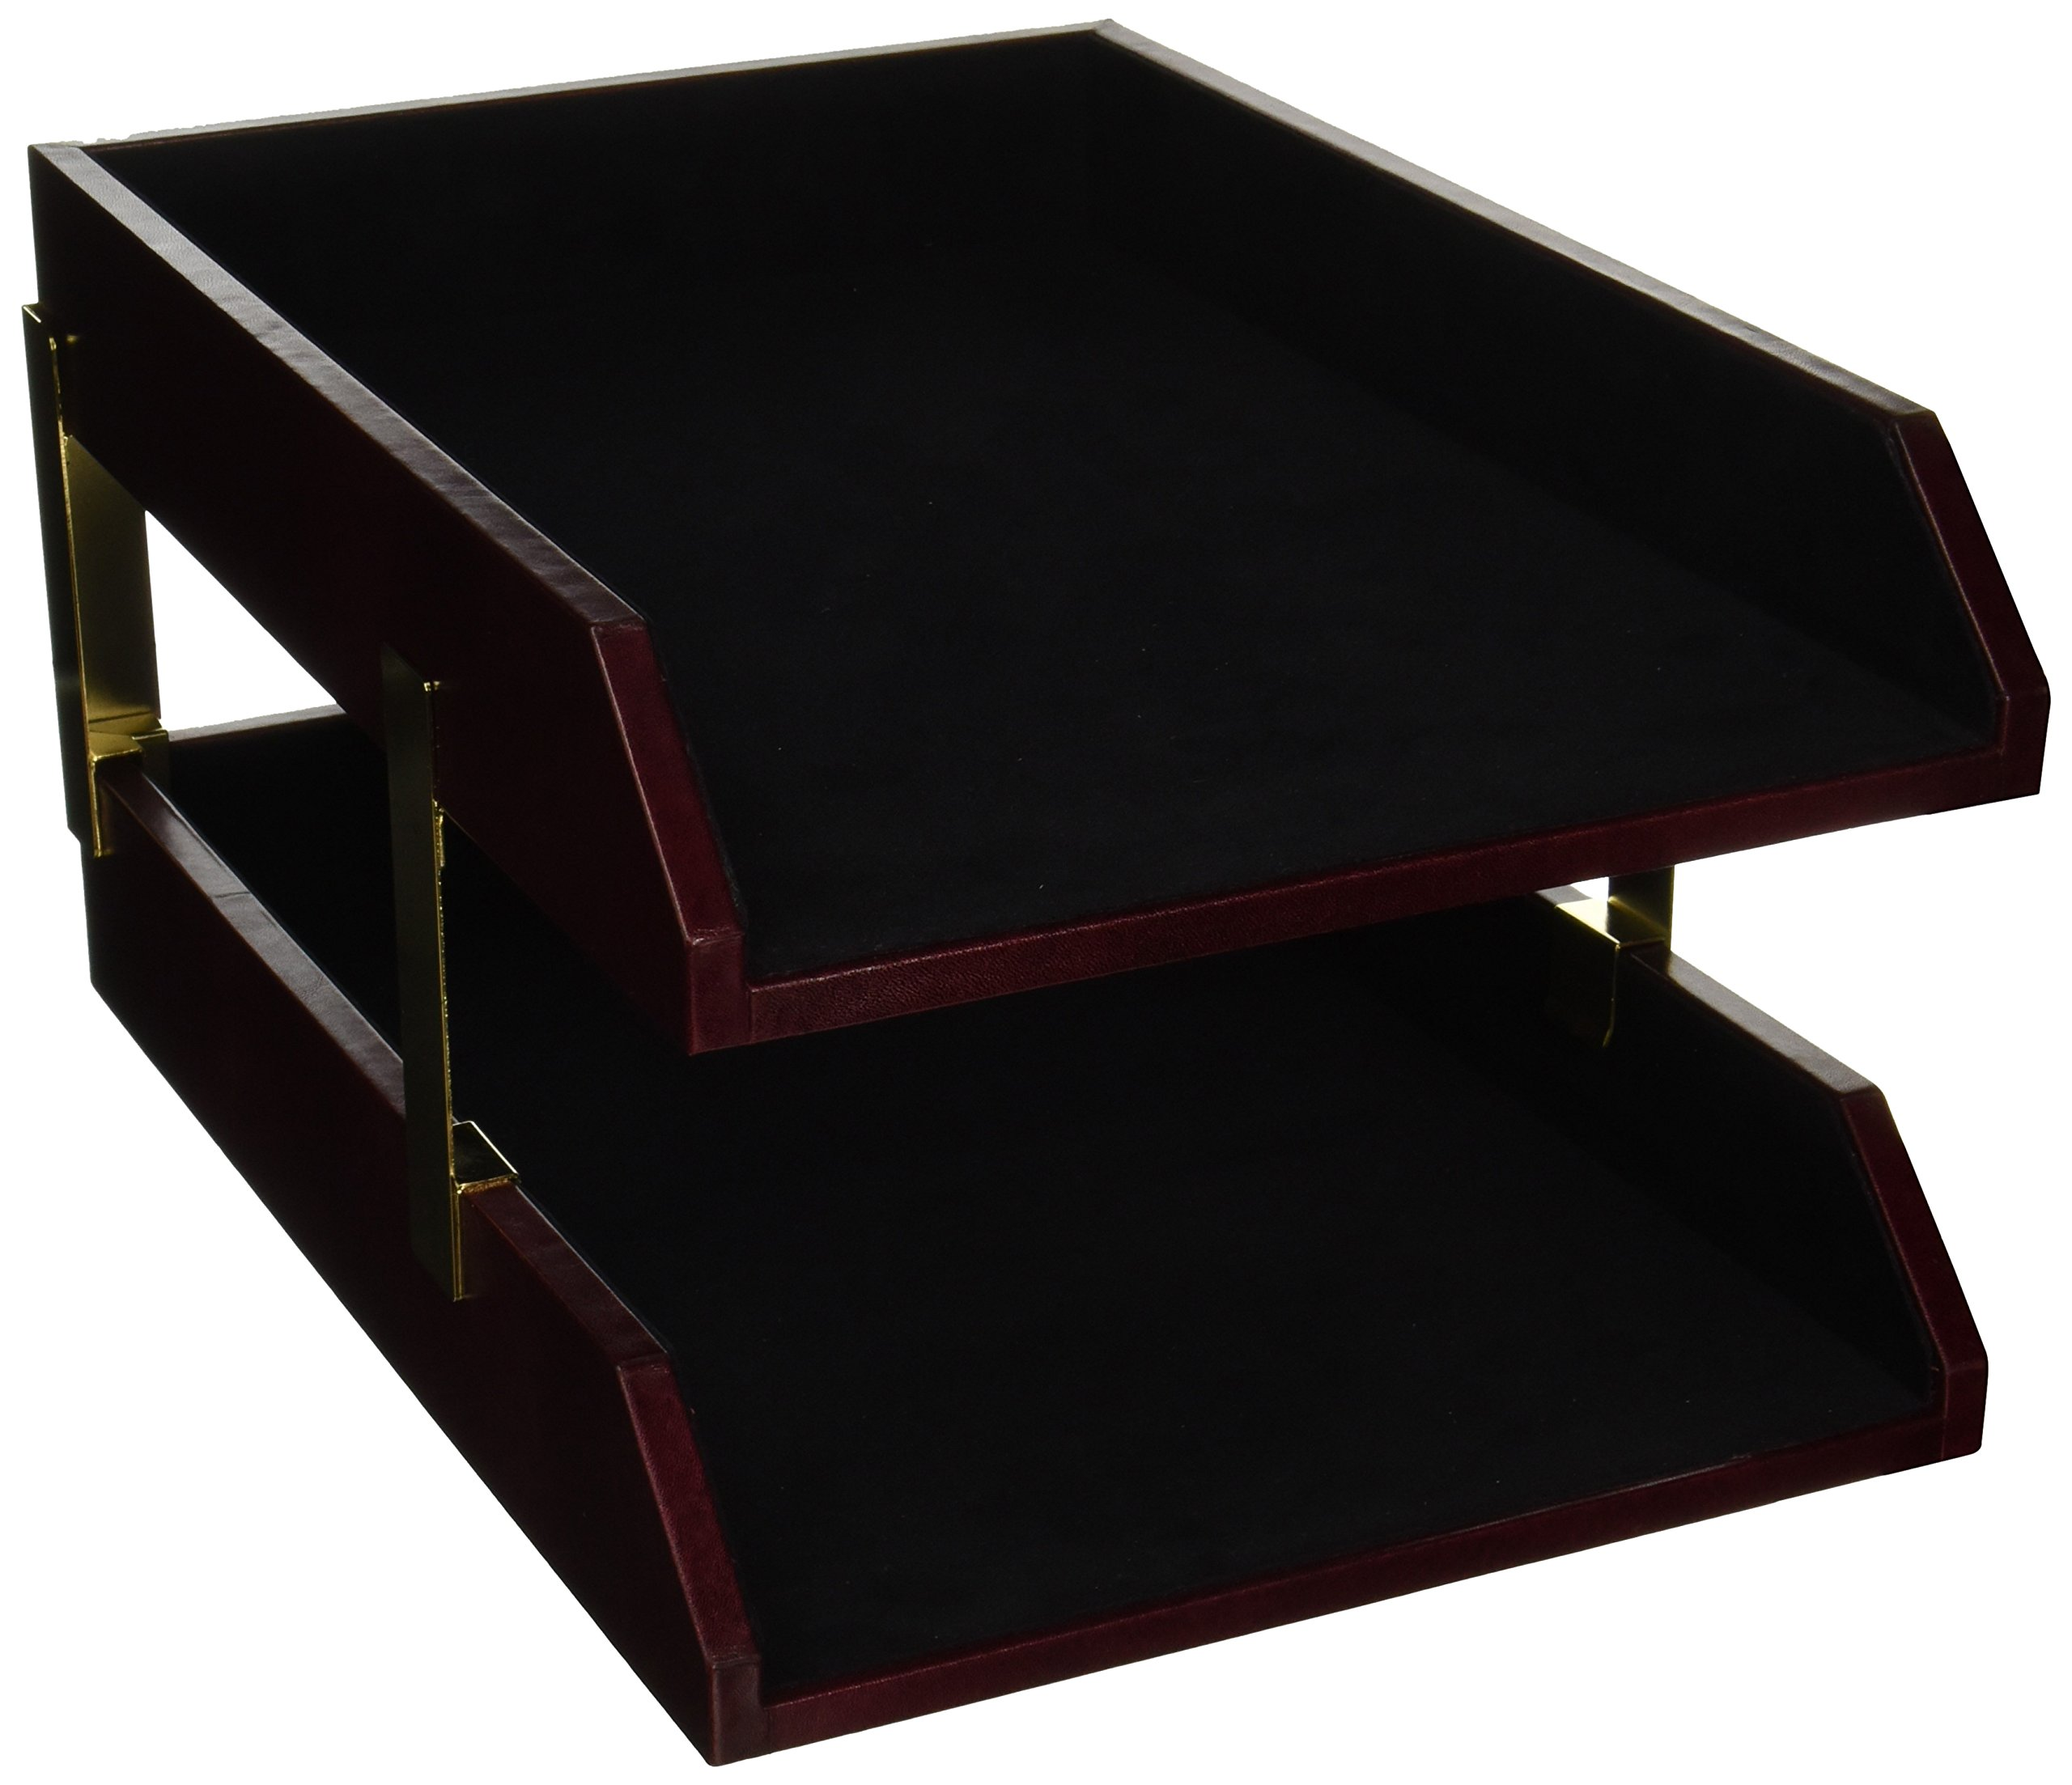 Dacasso Two-Toned Leather Double Legal Tray (A7021)